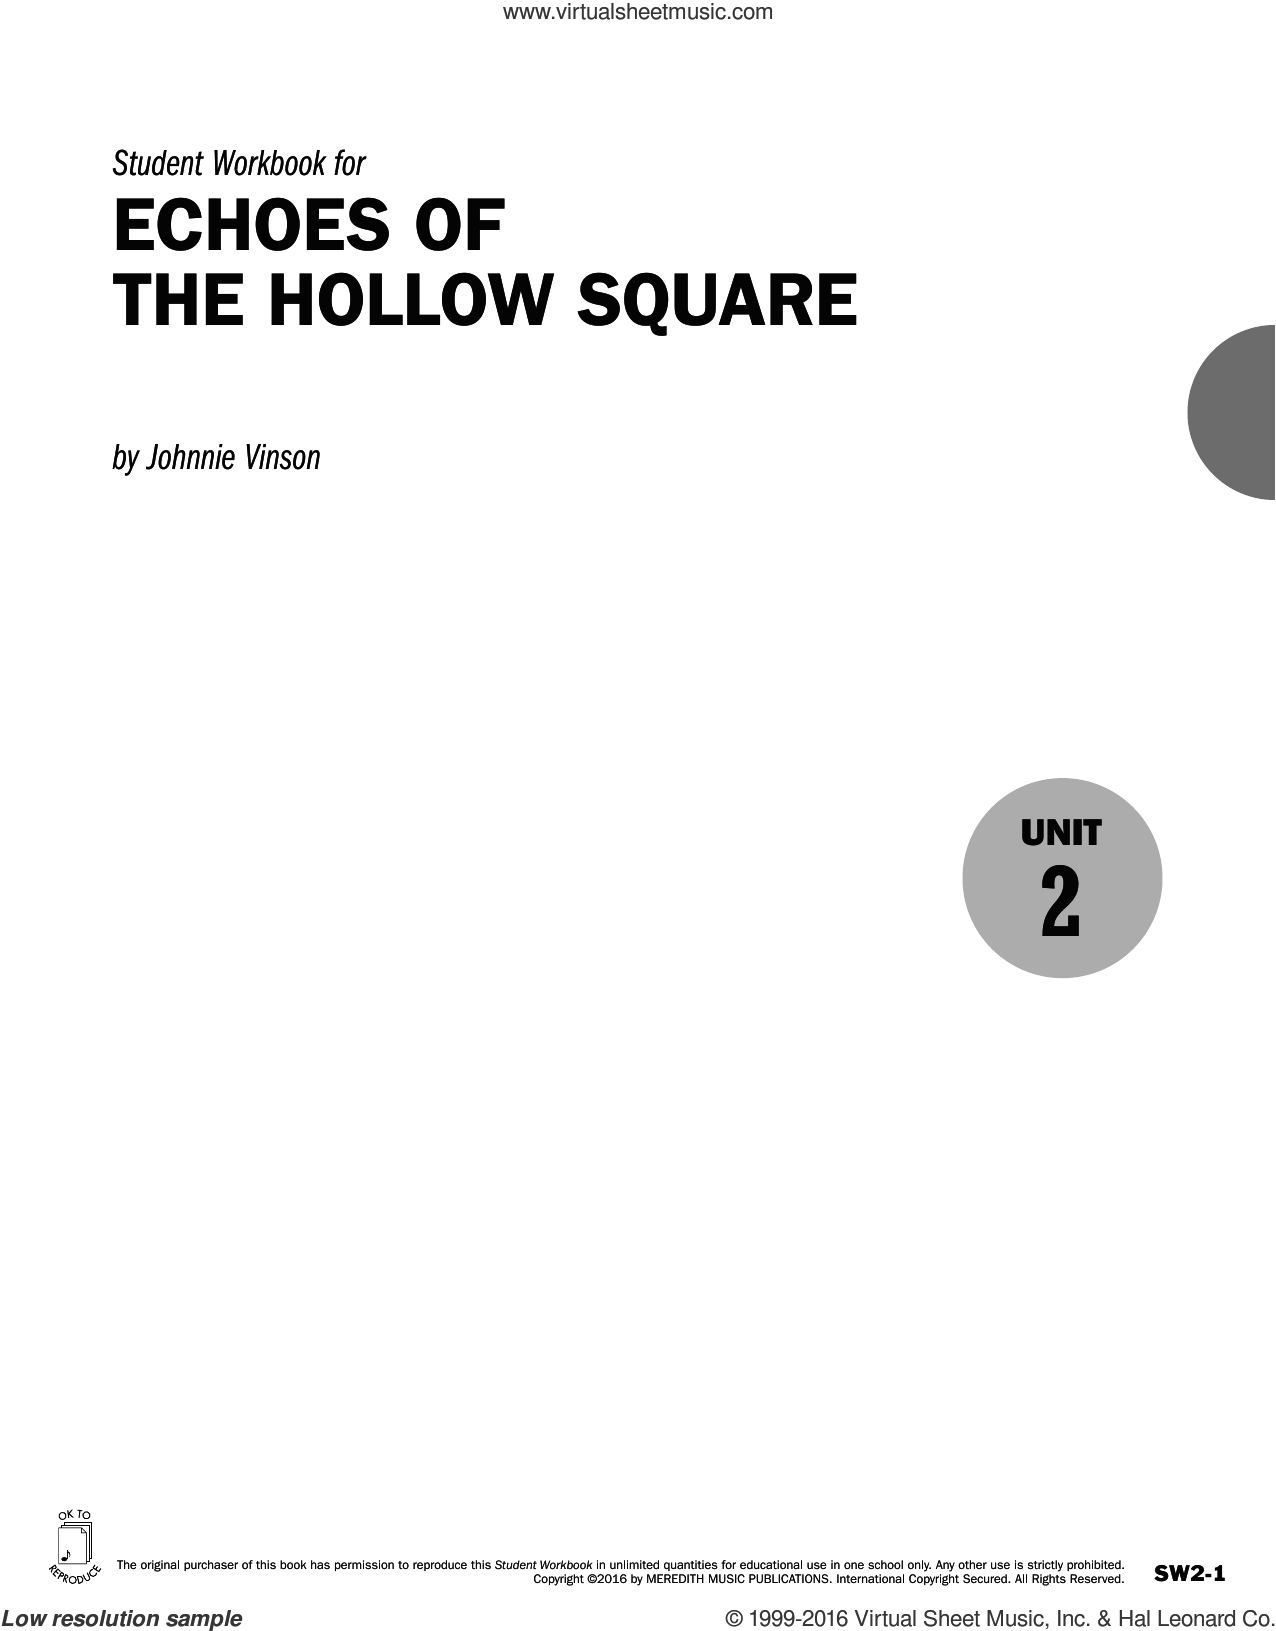 Guides to Band Masterworks, Vol. 6 - Student Workbook - Echoes of The Hollow Square sheet music for for flute or other instruments by Johnnie Vinson, intermediate skill level